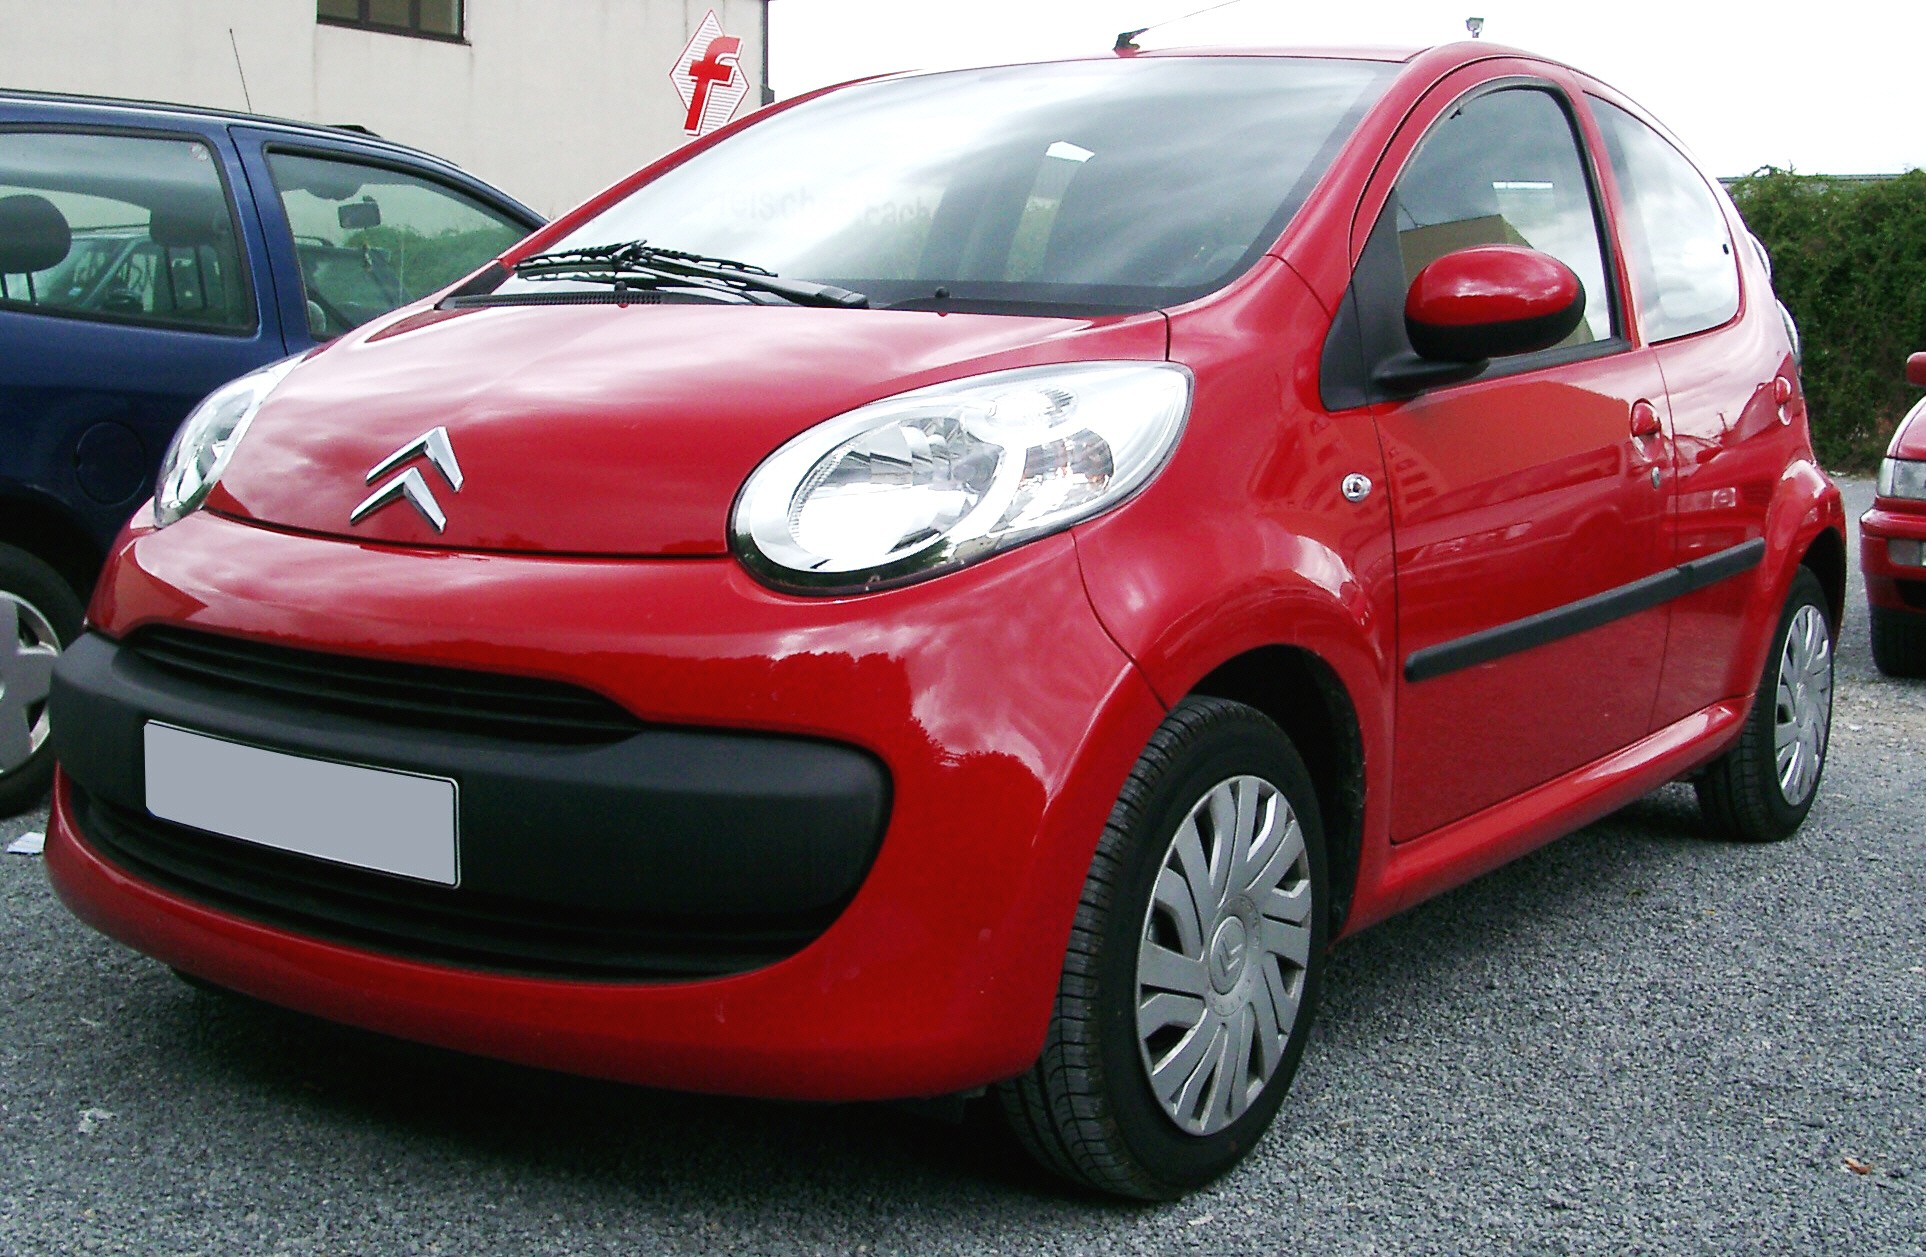 Description Citroen C1 front 20070511.jpg